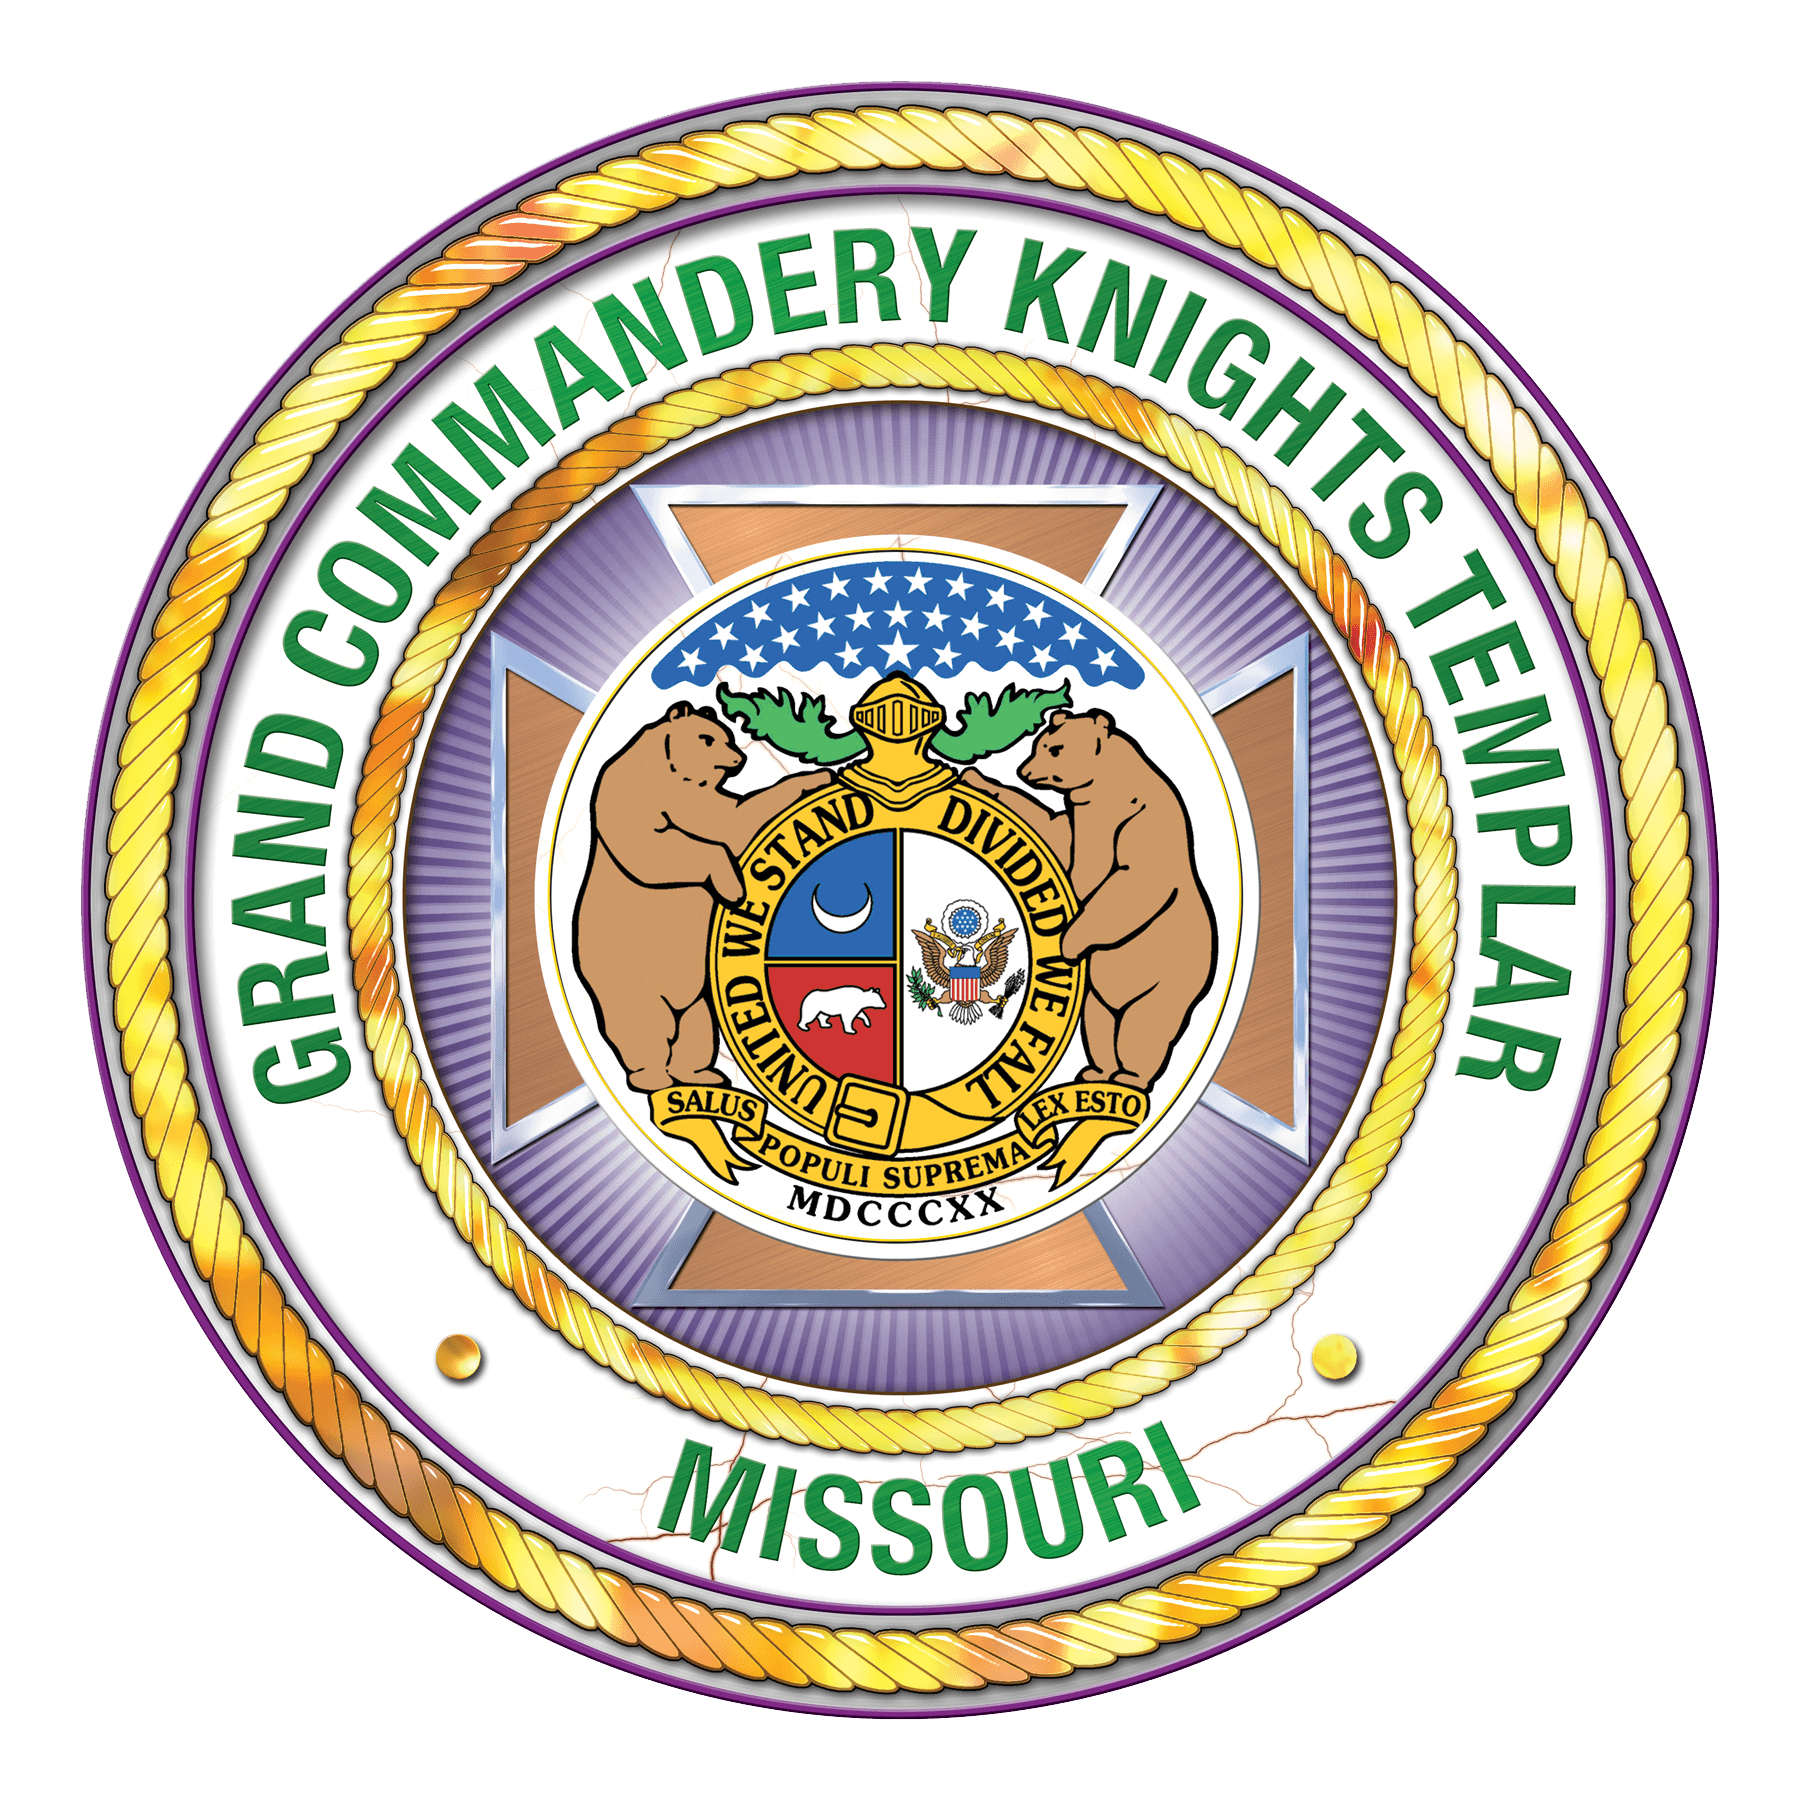 Grand Commander Official Visit - Bethany Commandery No. 42 - Bethany @ Bethany Masonic Temple | Bethany | Missouri | United States